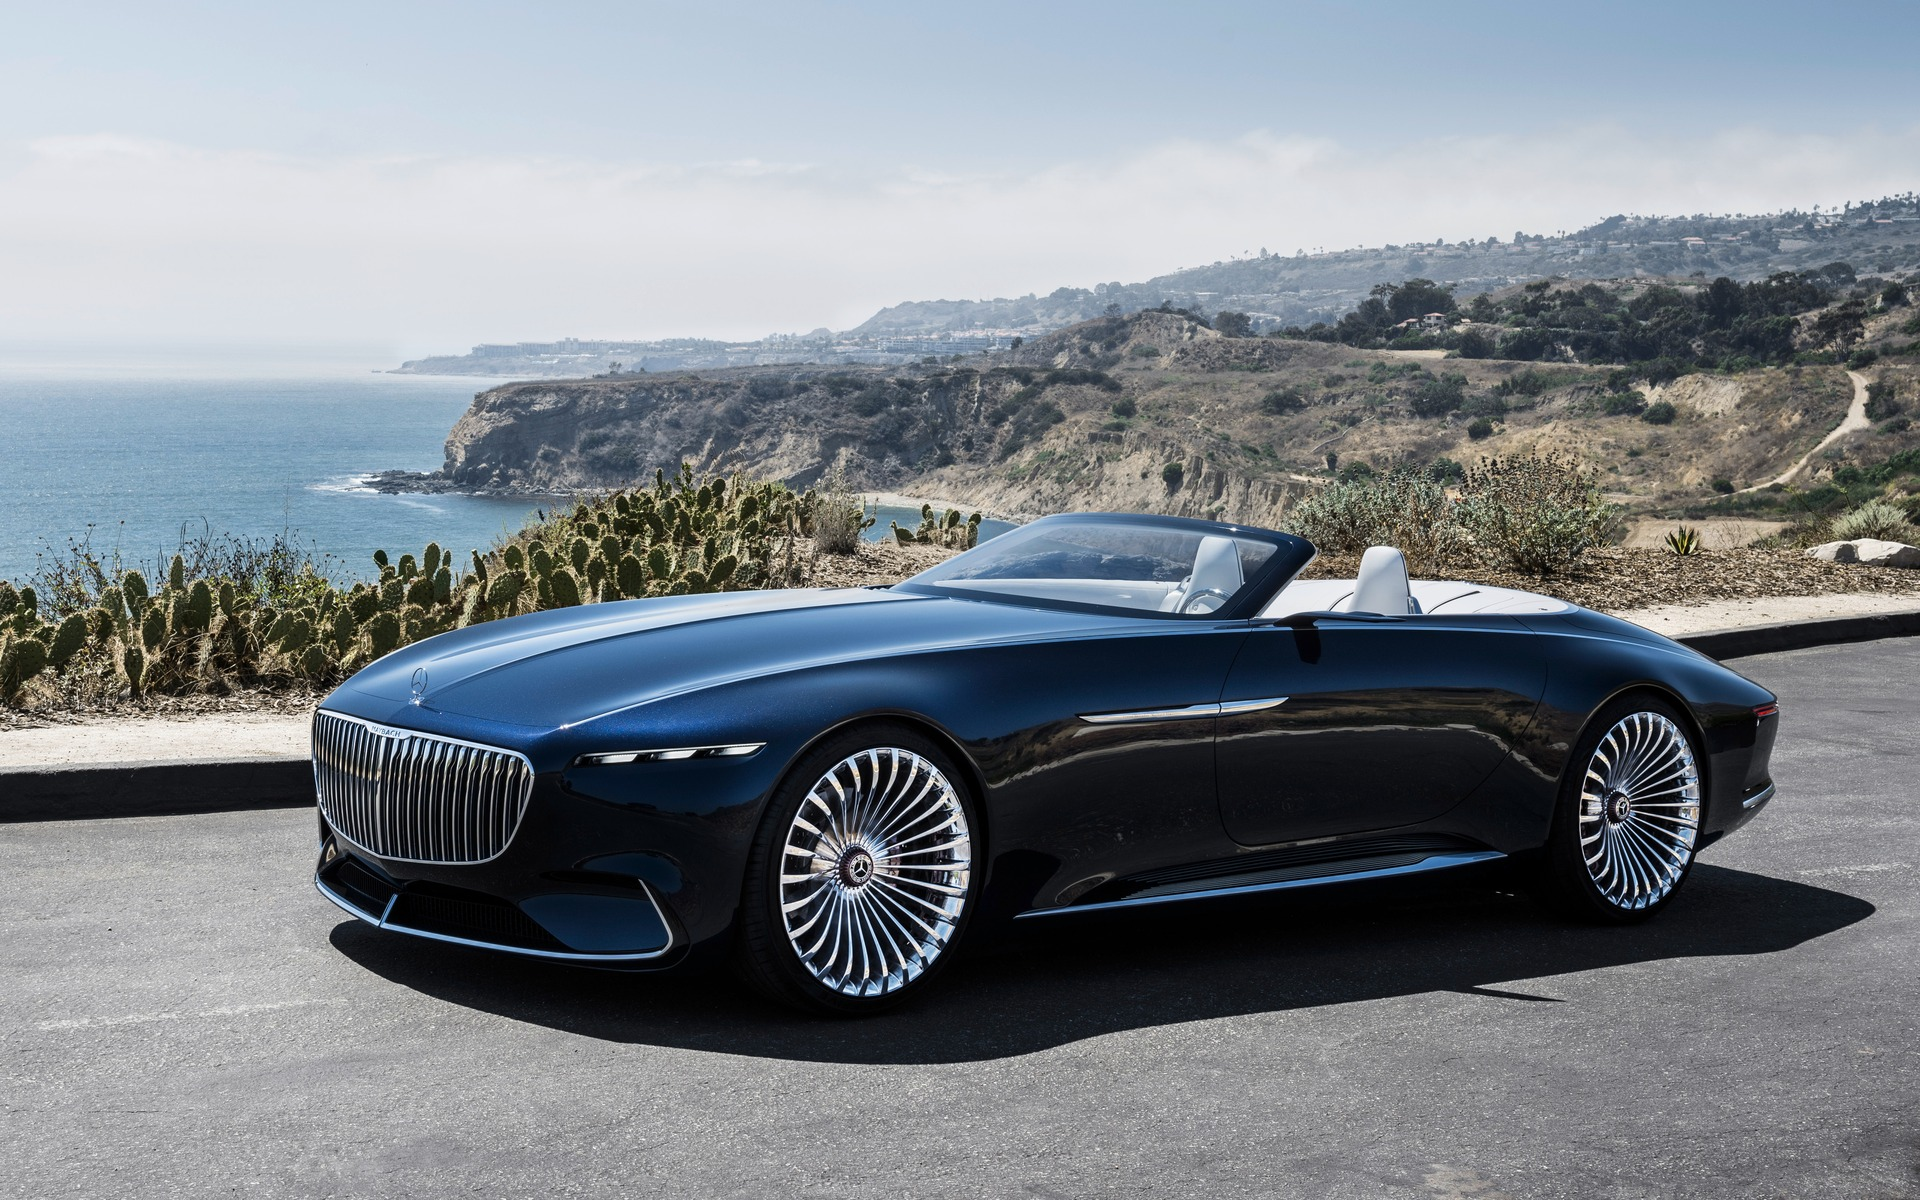 vision mercedes-maybach 6 cabriolet: breathtaking! - the car guide